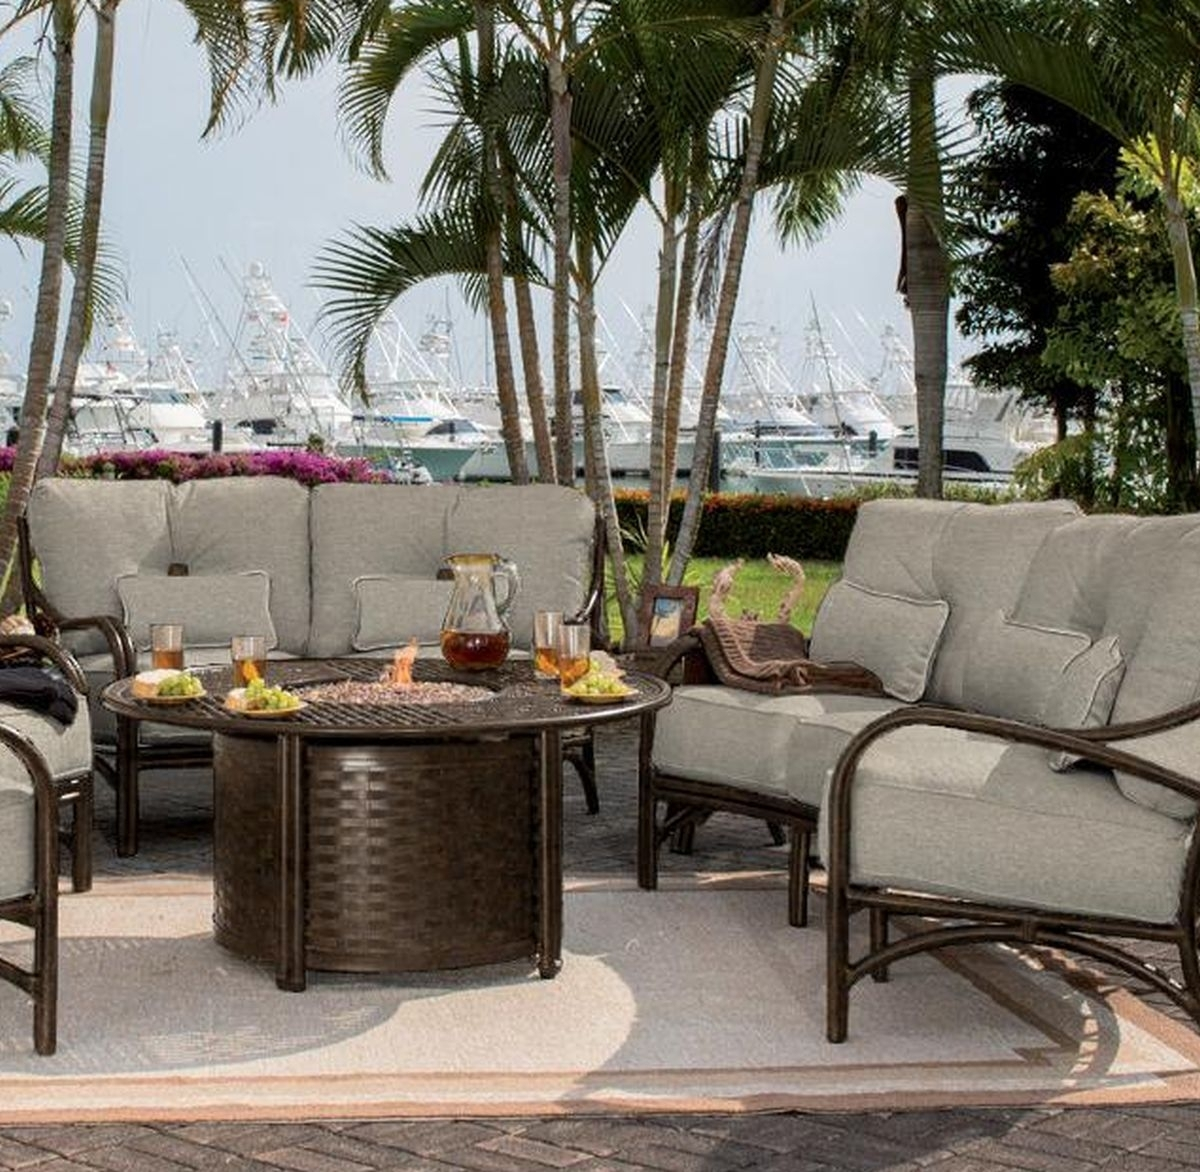 Castelle Resort Fire Pit 49 Round Coffee Table Outdoor Inside Resort Outdoor Furniture Beautiful Resort Outdoor Furniture